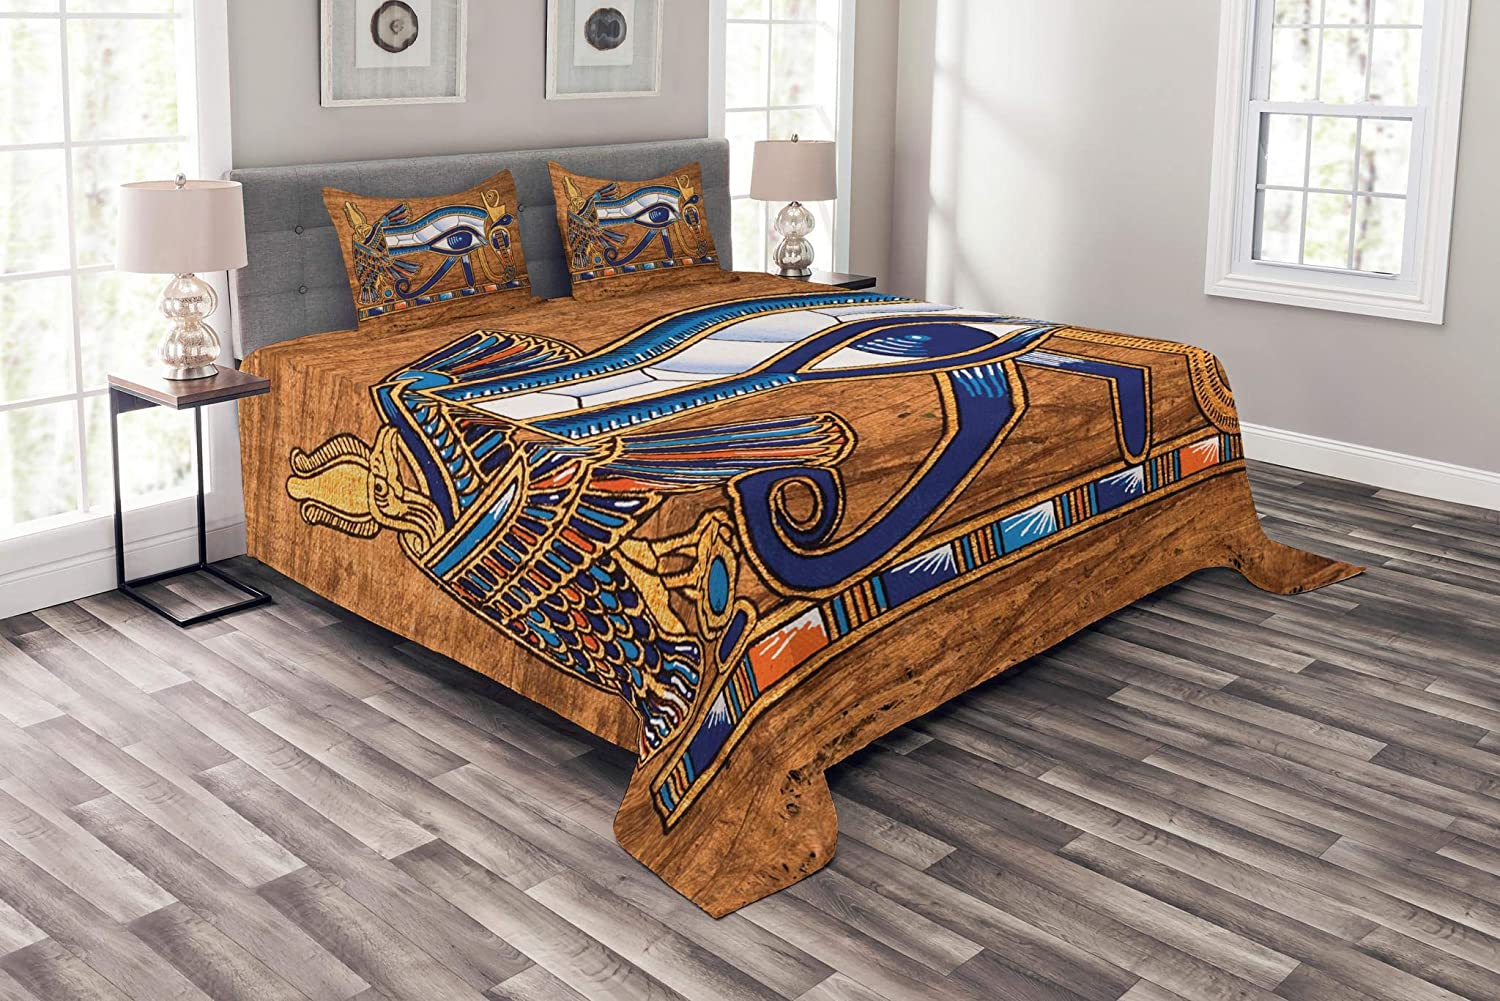 Lunarable Egyptian Bedspread, Egyptian Art Papyrus Depicting Eye Mosaic Style Design, Decorative Quilted 3 Piece Coverlet Set with 2 Pillow Shams, King Size, Navy Blue